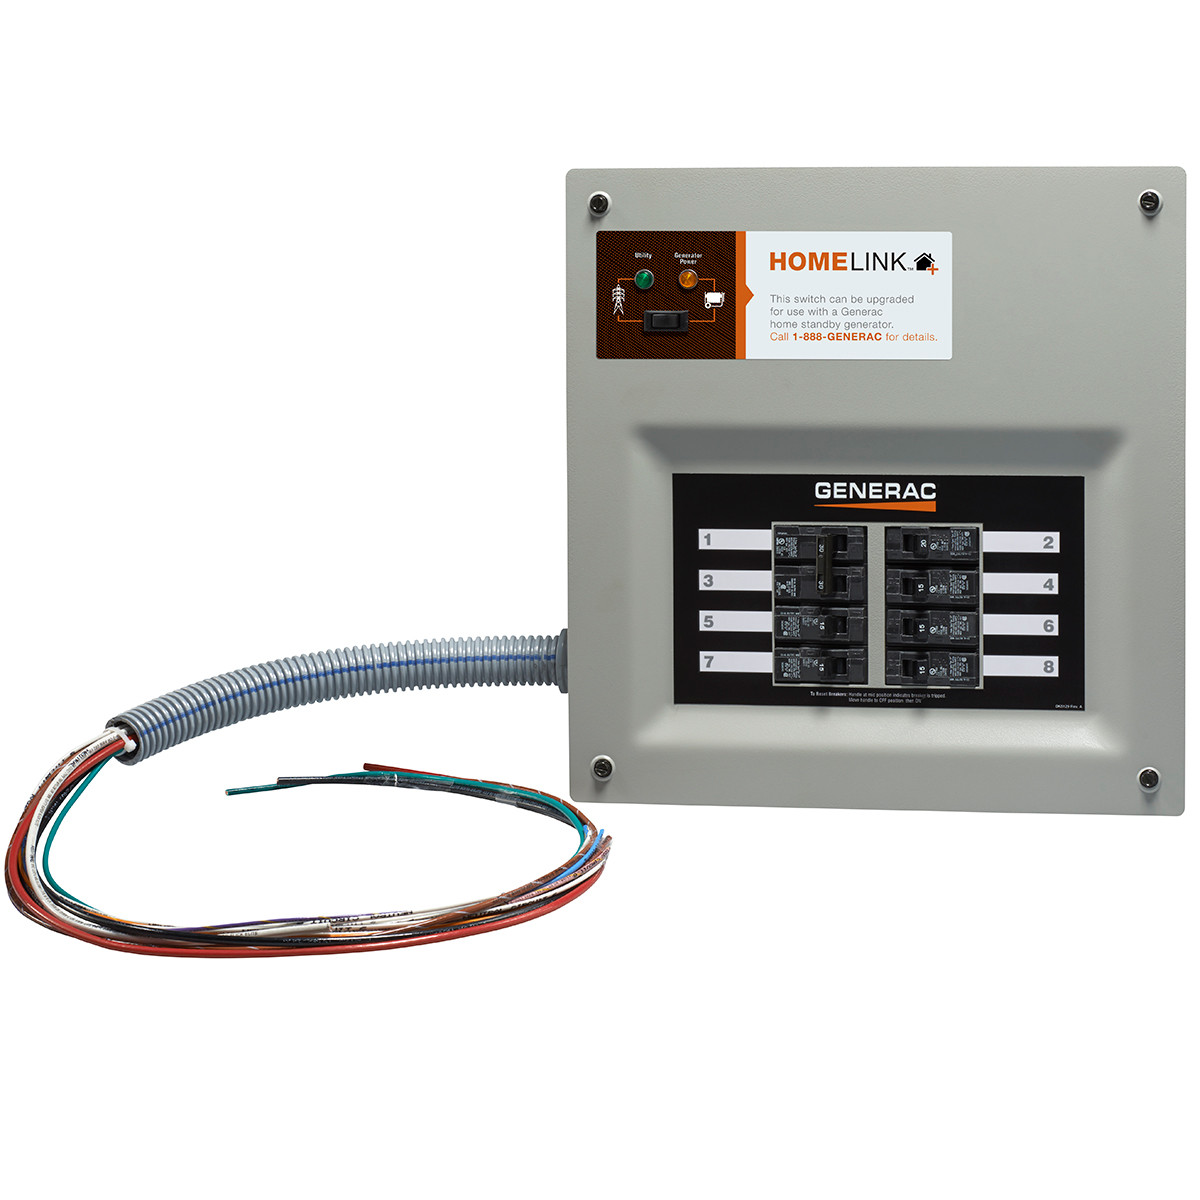 Generac Homelink 6854 30a 6 8 Circuit Nema 1 Upgradeable Manual Pressure Washer Wiring Diagram Transfer Switch With Aluminum